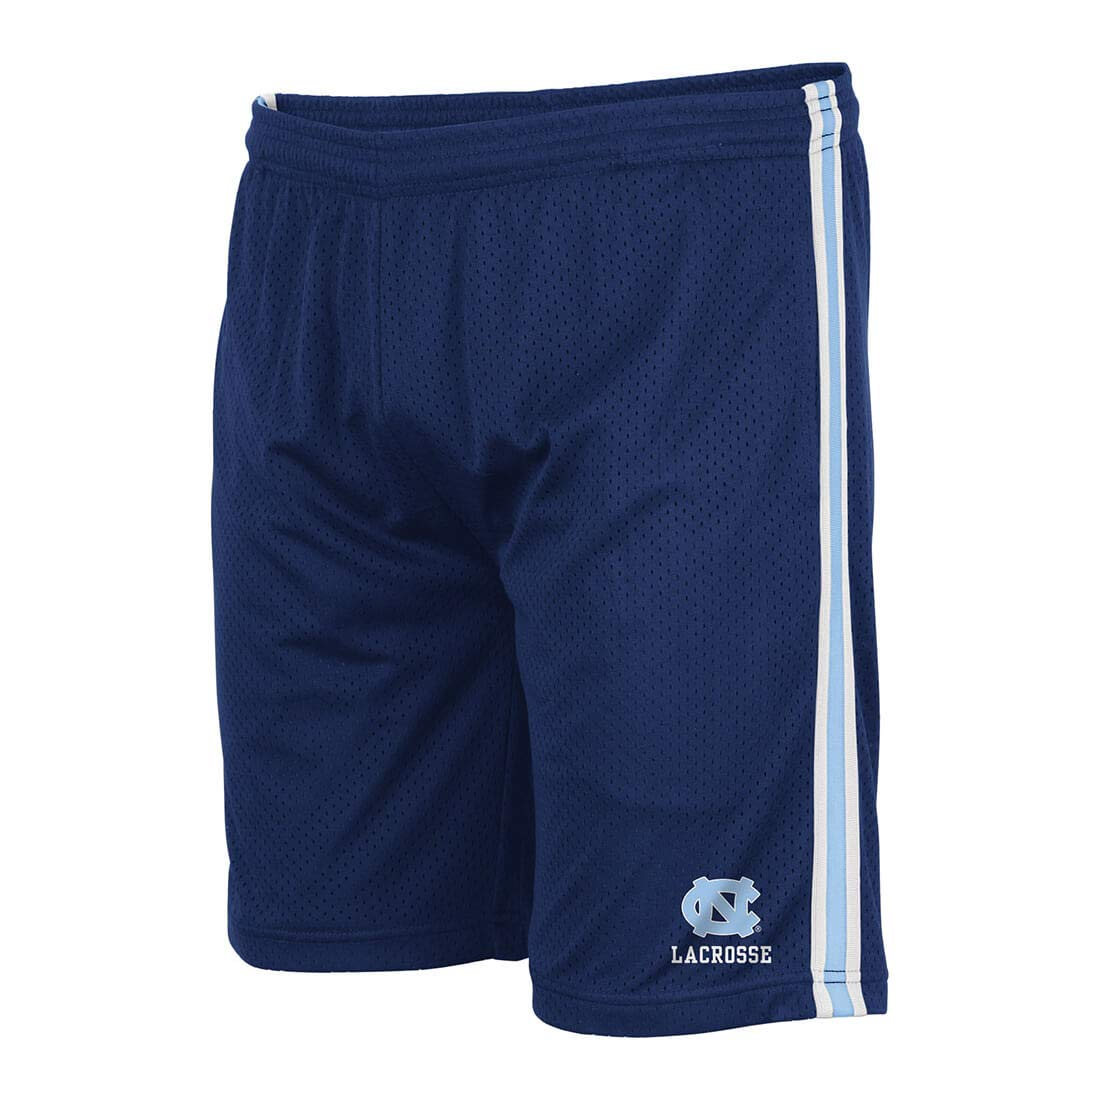 Lacrosse Unlimited North Carolina Lacrosse Shorts-Adult-Small